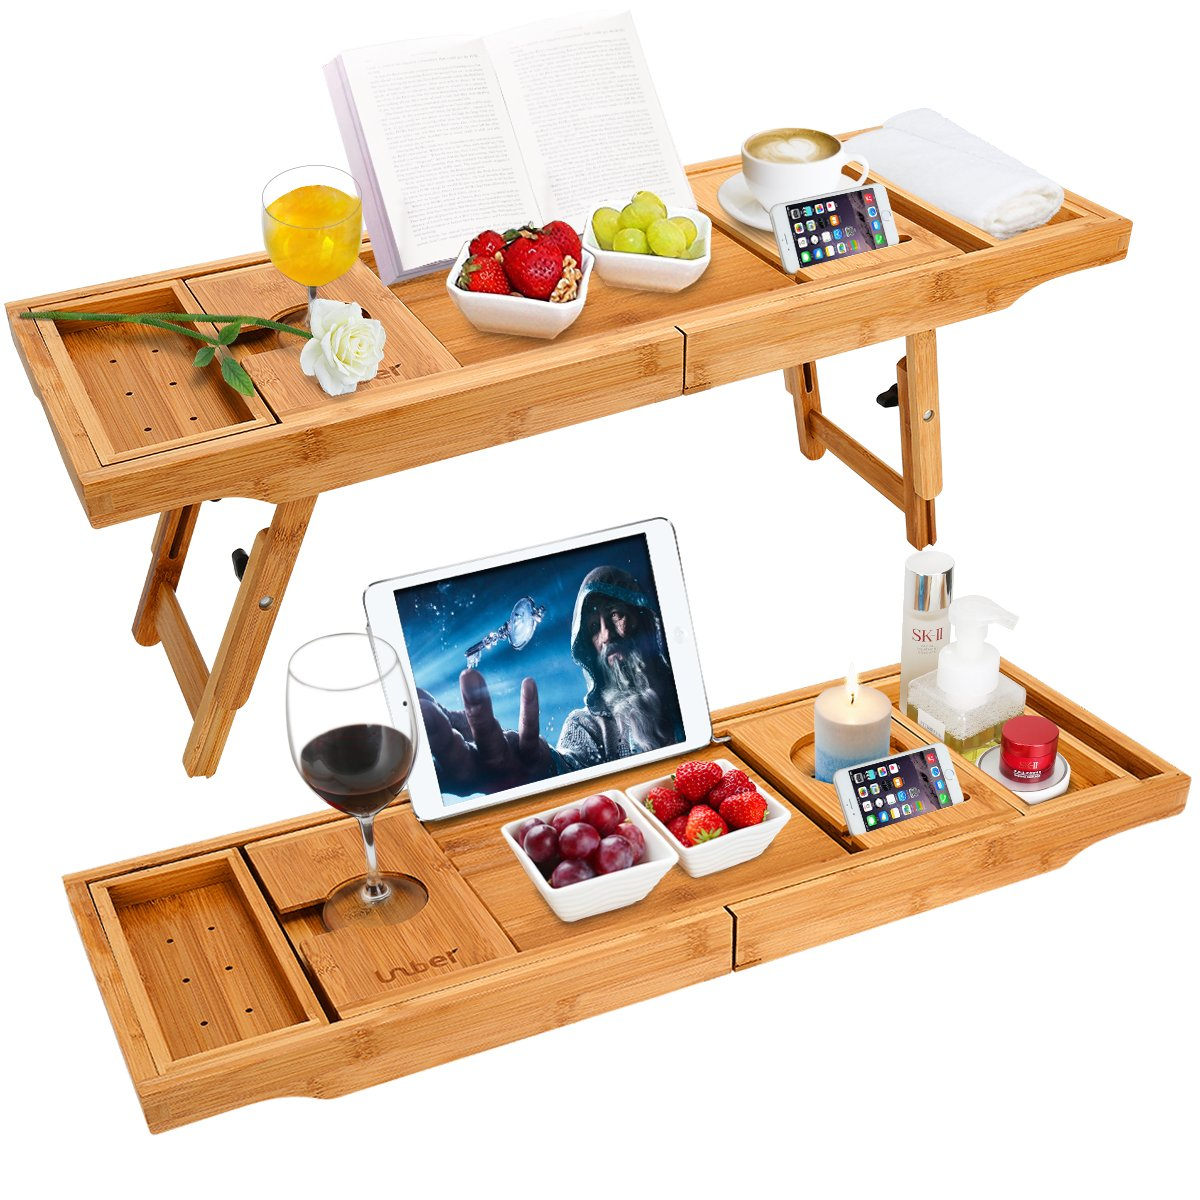 Wooden-Life Bathtub Caddy Tray& Laptop Desk with Foldable Legs, 2 in 1 Wisdom Design - Luxurious Bathtub Caddy with Extending Sides, Tablet Holder, Reading Rack,Cellphone Tray and Wine Glass Holder by Wooden-Life (Image #1)